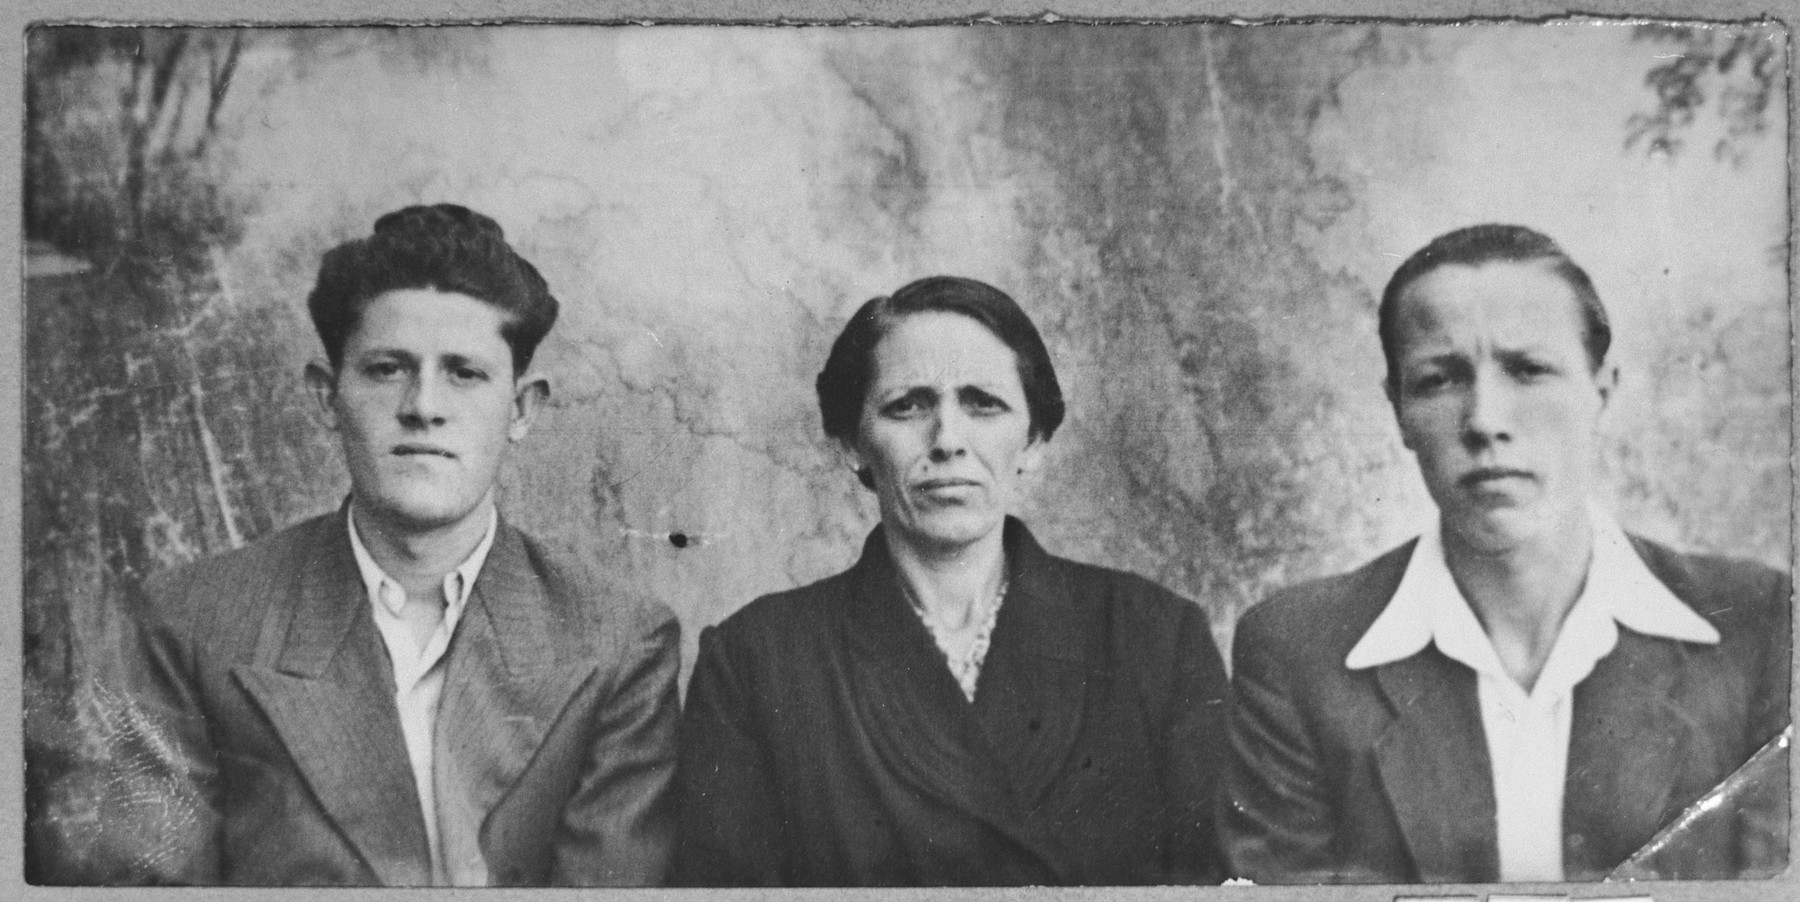 Portrait of Mathilda Russo, wife of Aron Russo, and Aron's sons, Anri and Isak.  Anri and Isak were students.  They lived at Karagoryeva 66 in Bitola.